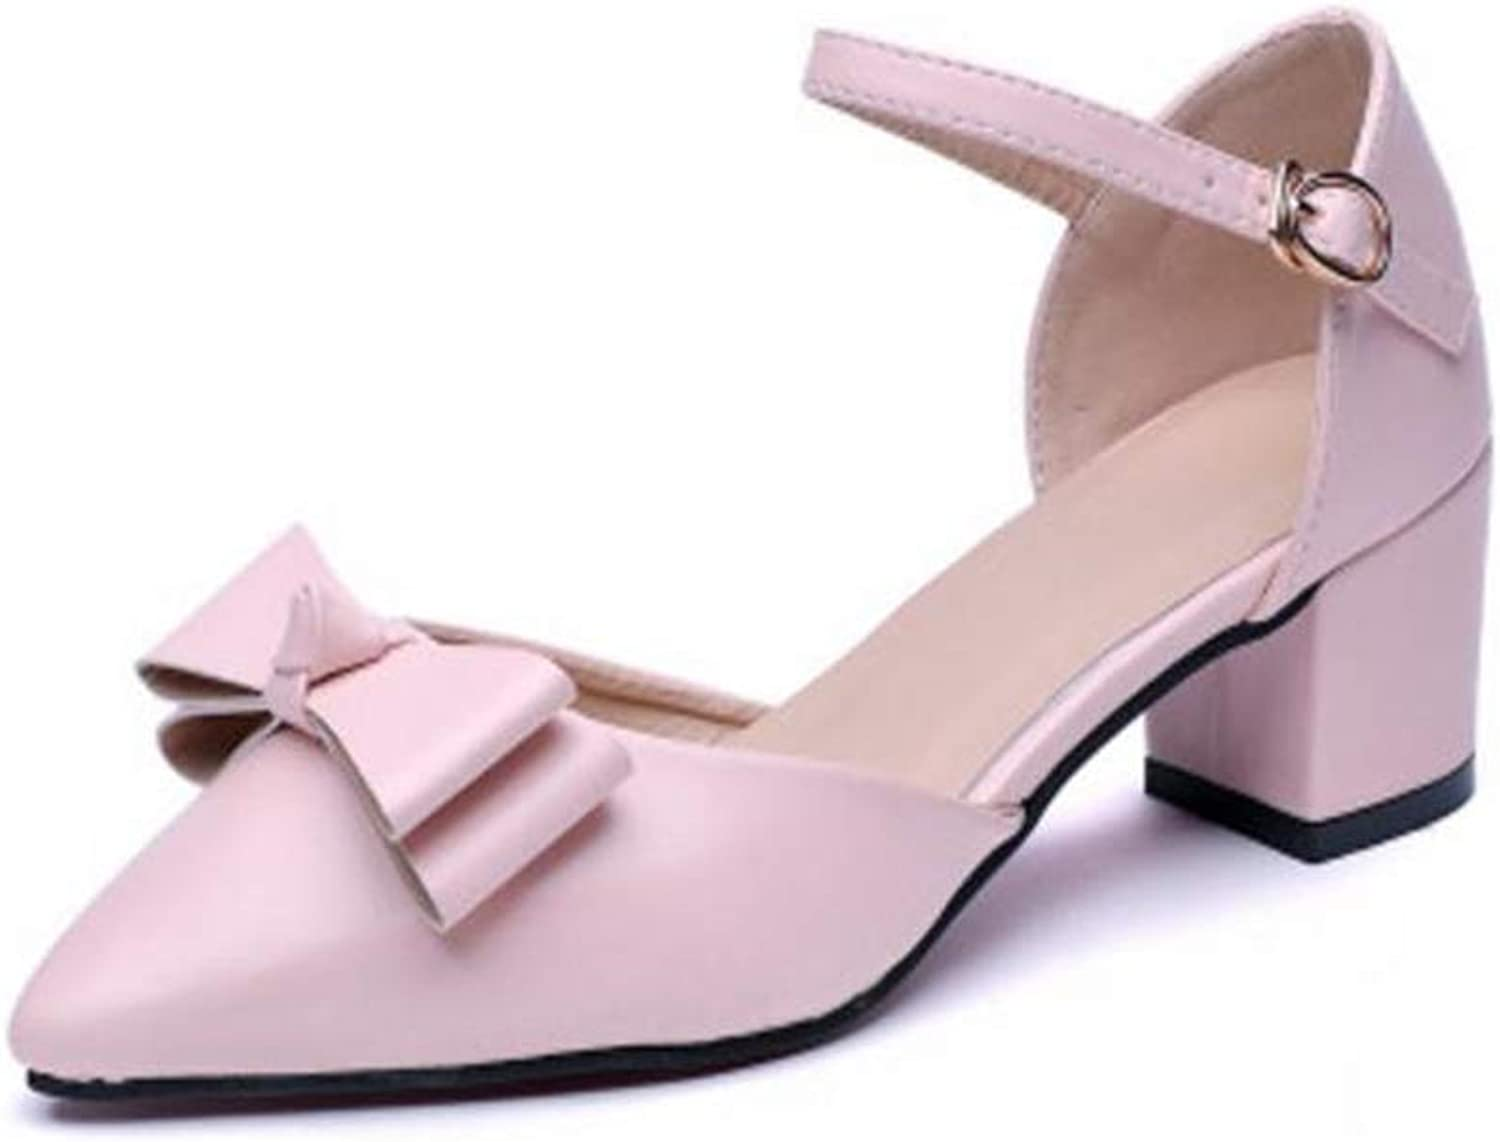 FORTUN Comfortable Heel shoes Women's Thick Heel Casual shoes Cute Sandals